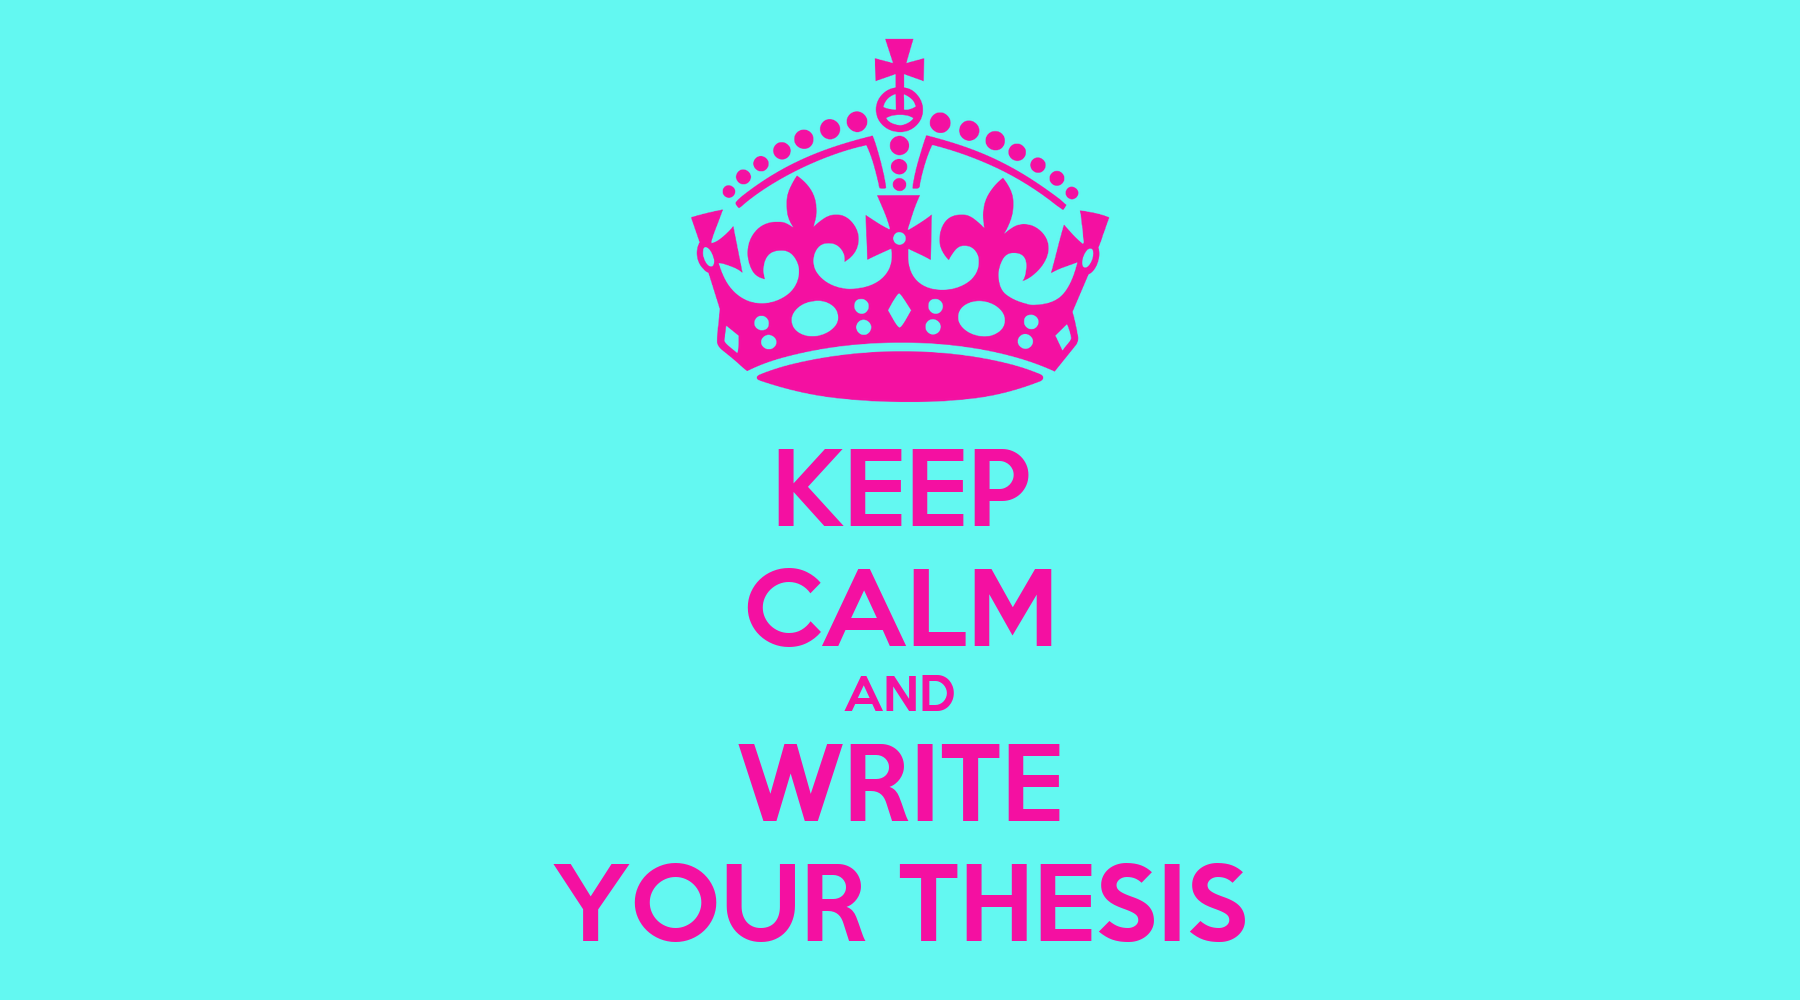 Writing a phd thesis in one month